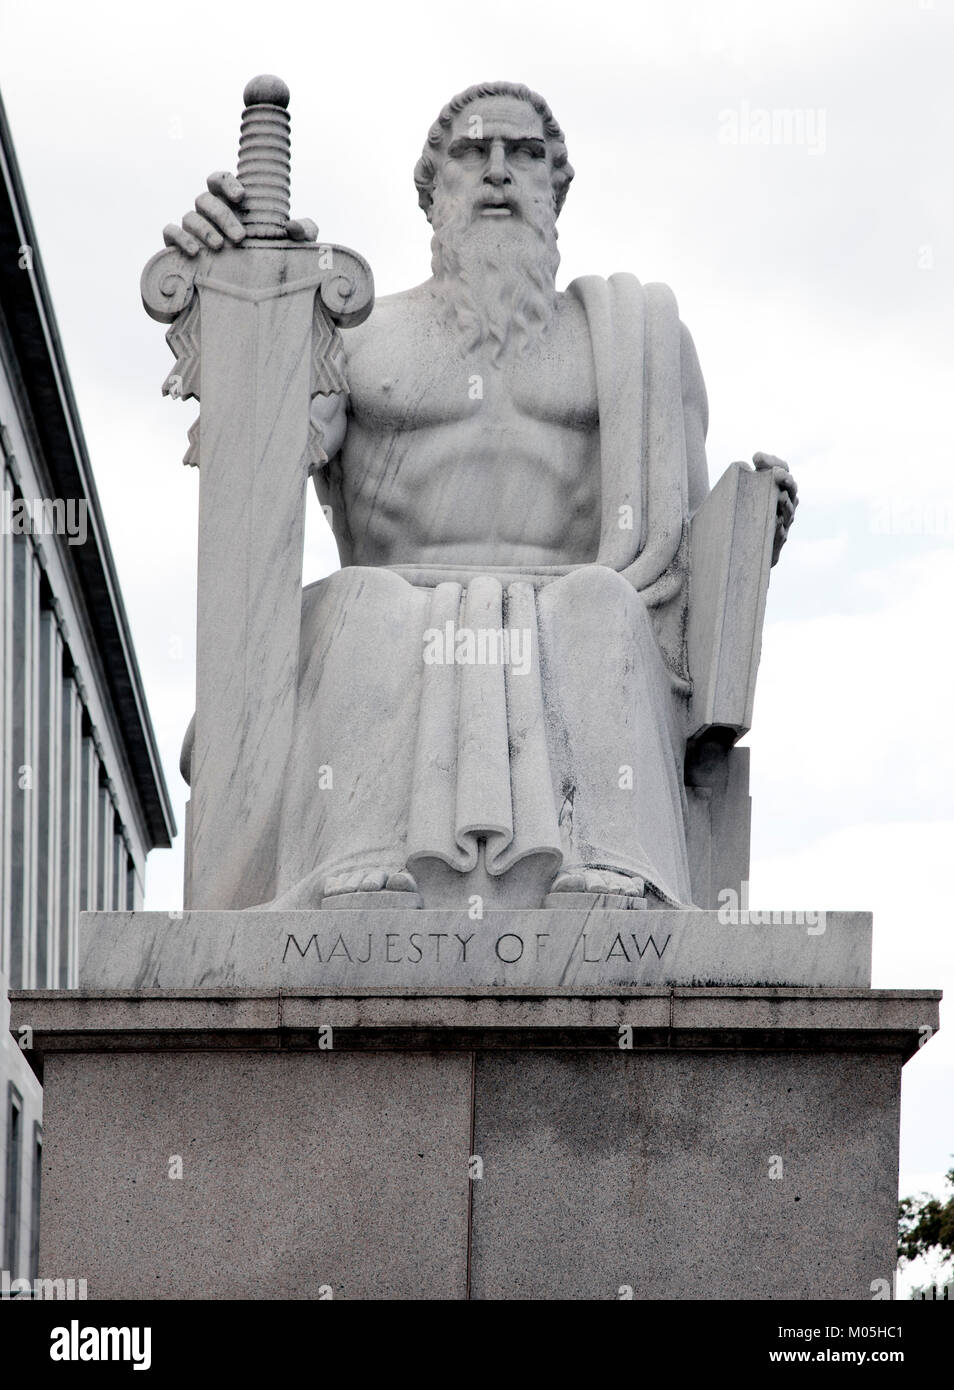 Majesty of Law statue - Stock Image